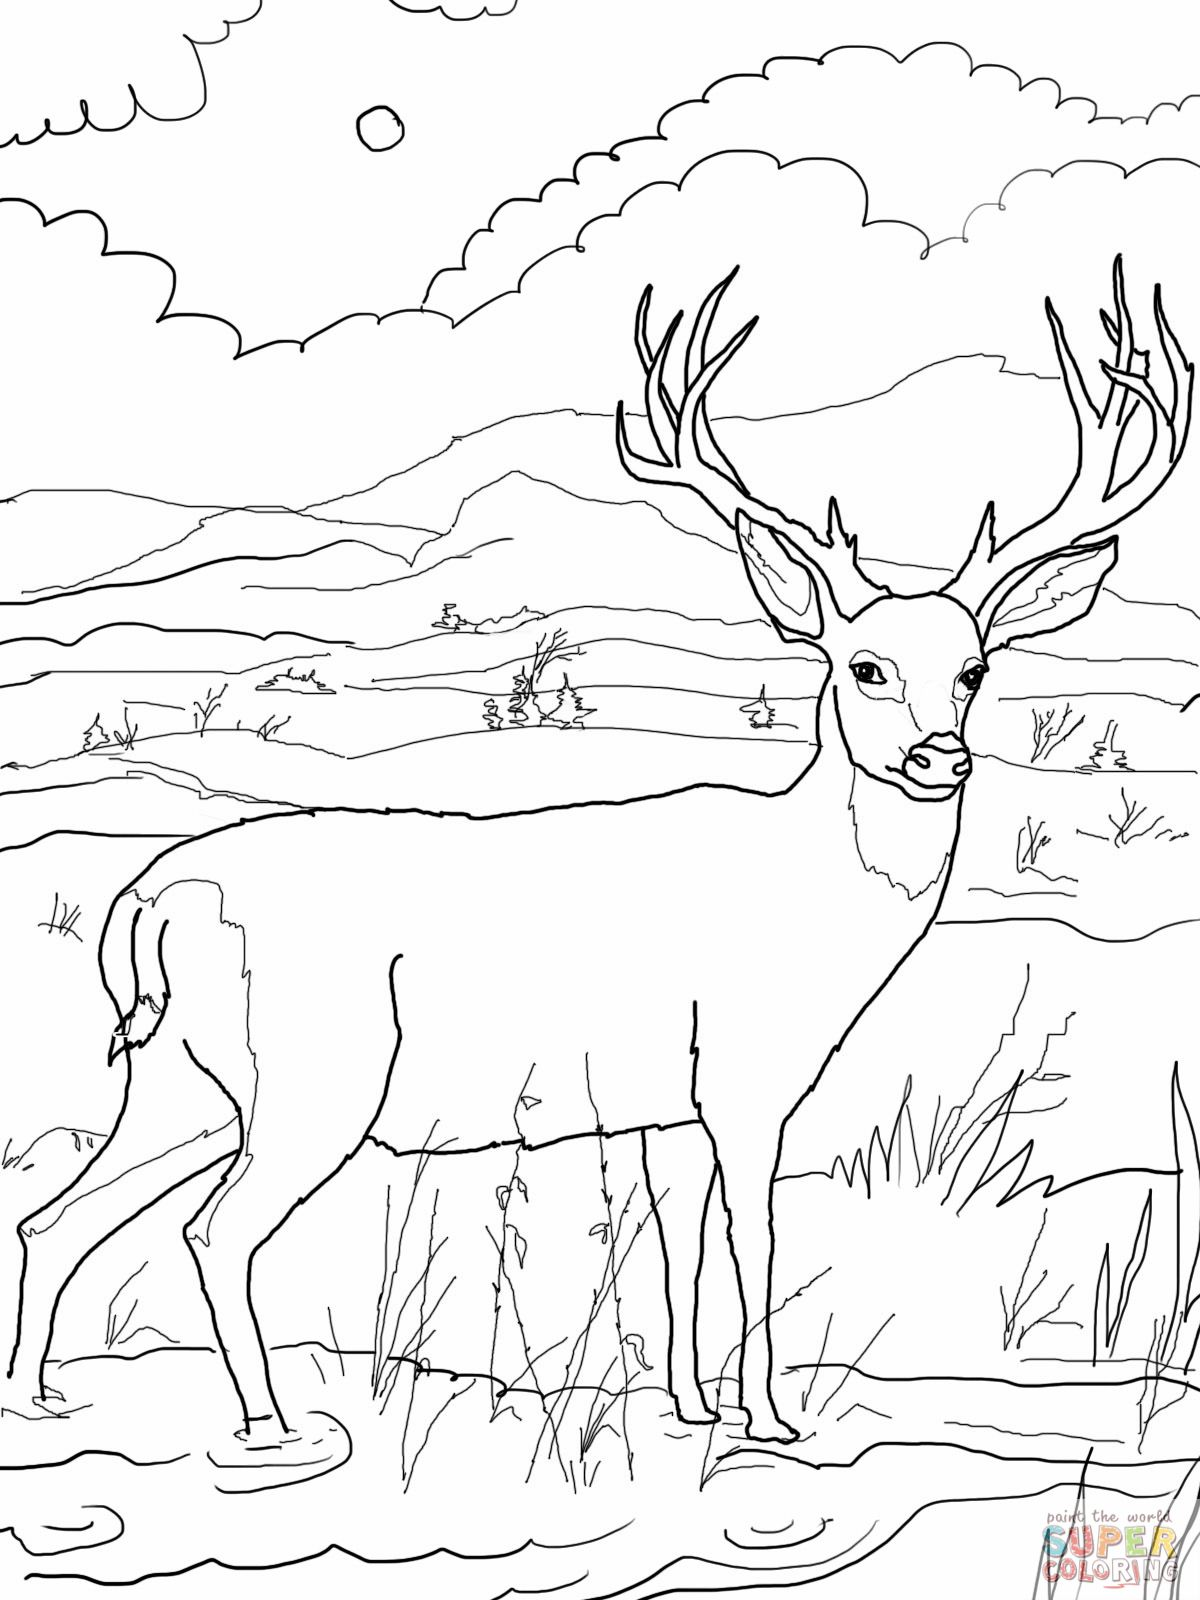 deer coloring pages blacktail mule deer coloring online super coloring - Deer Coloring Pages